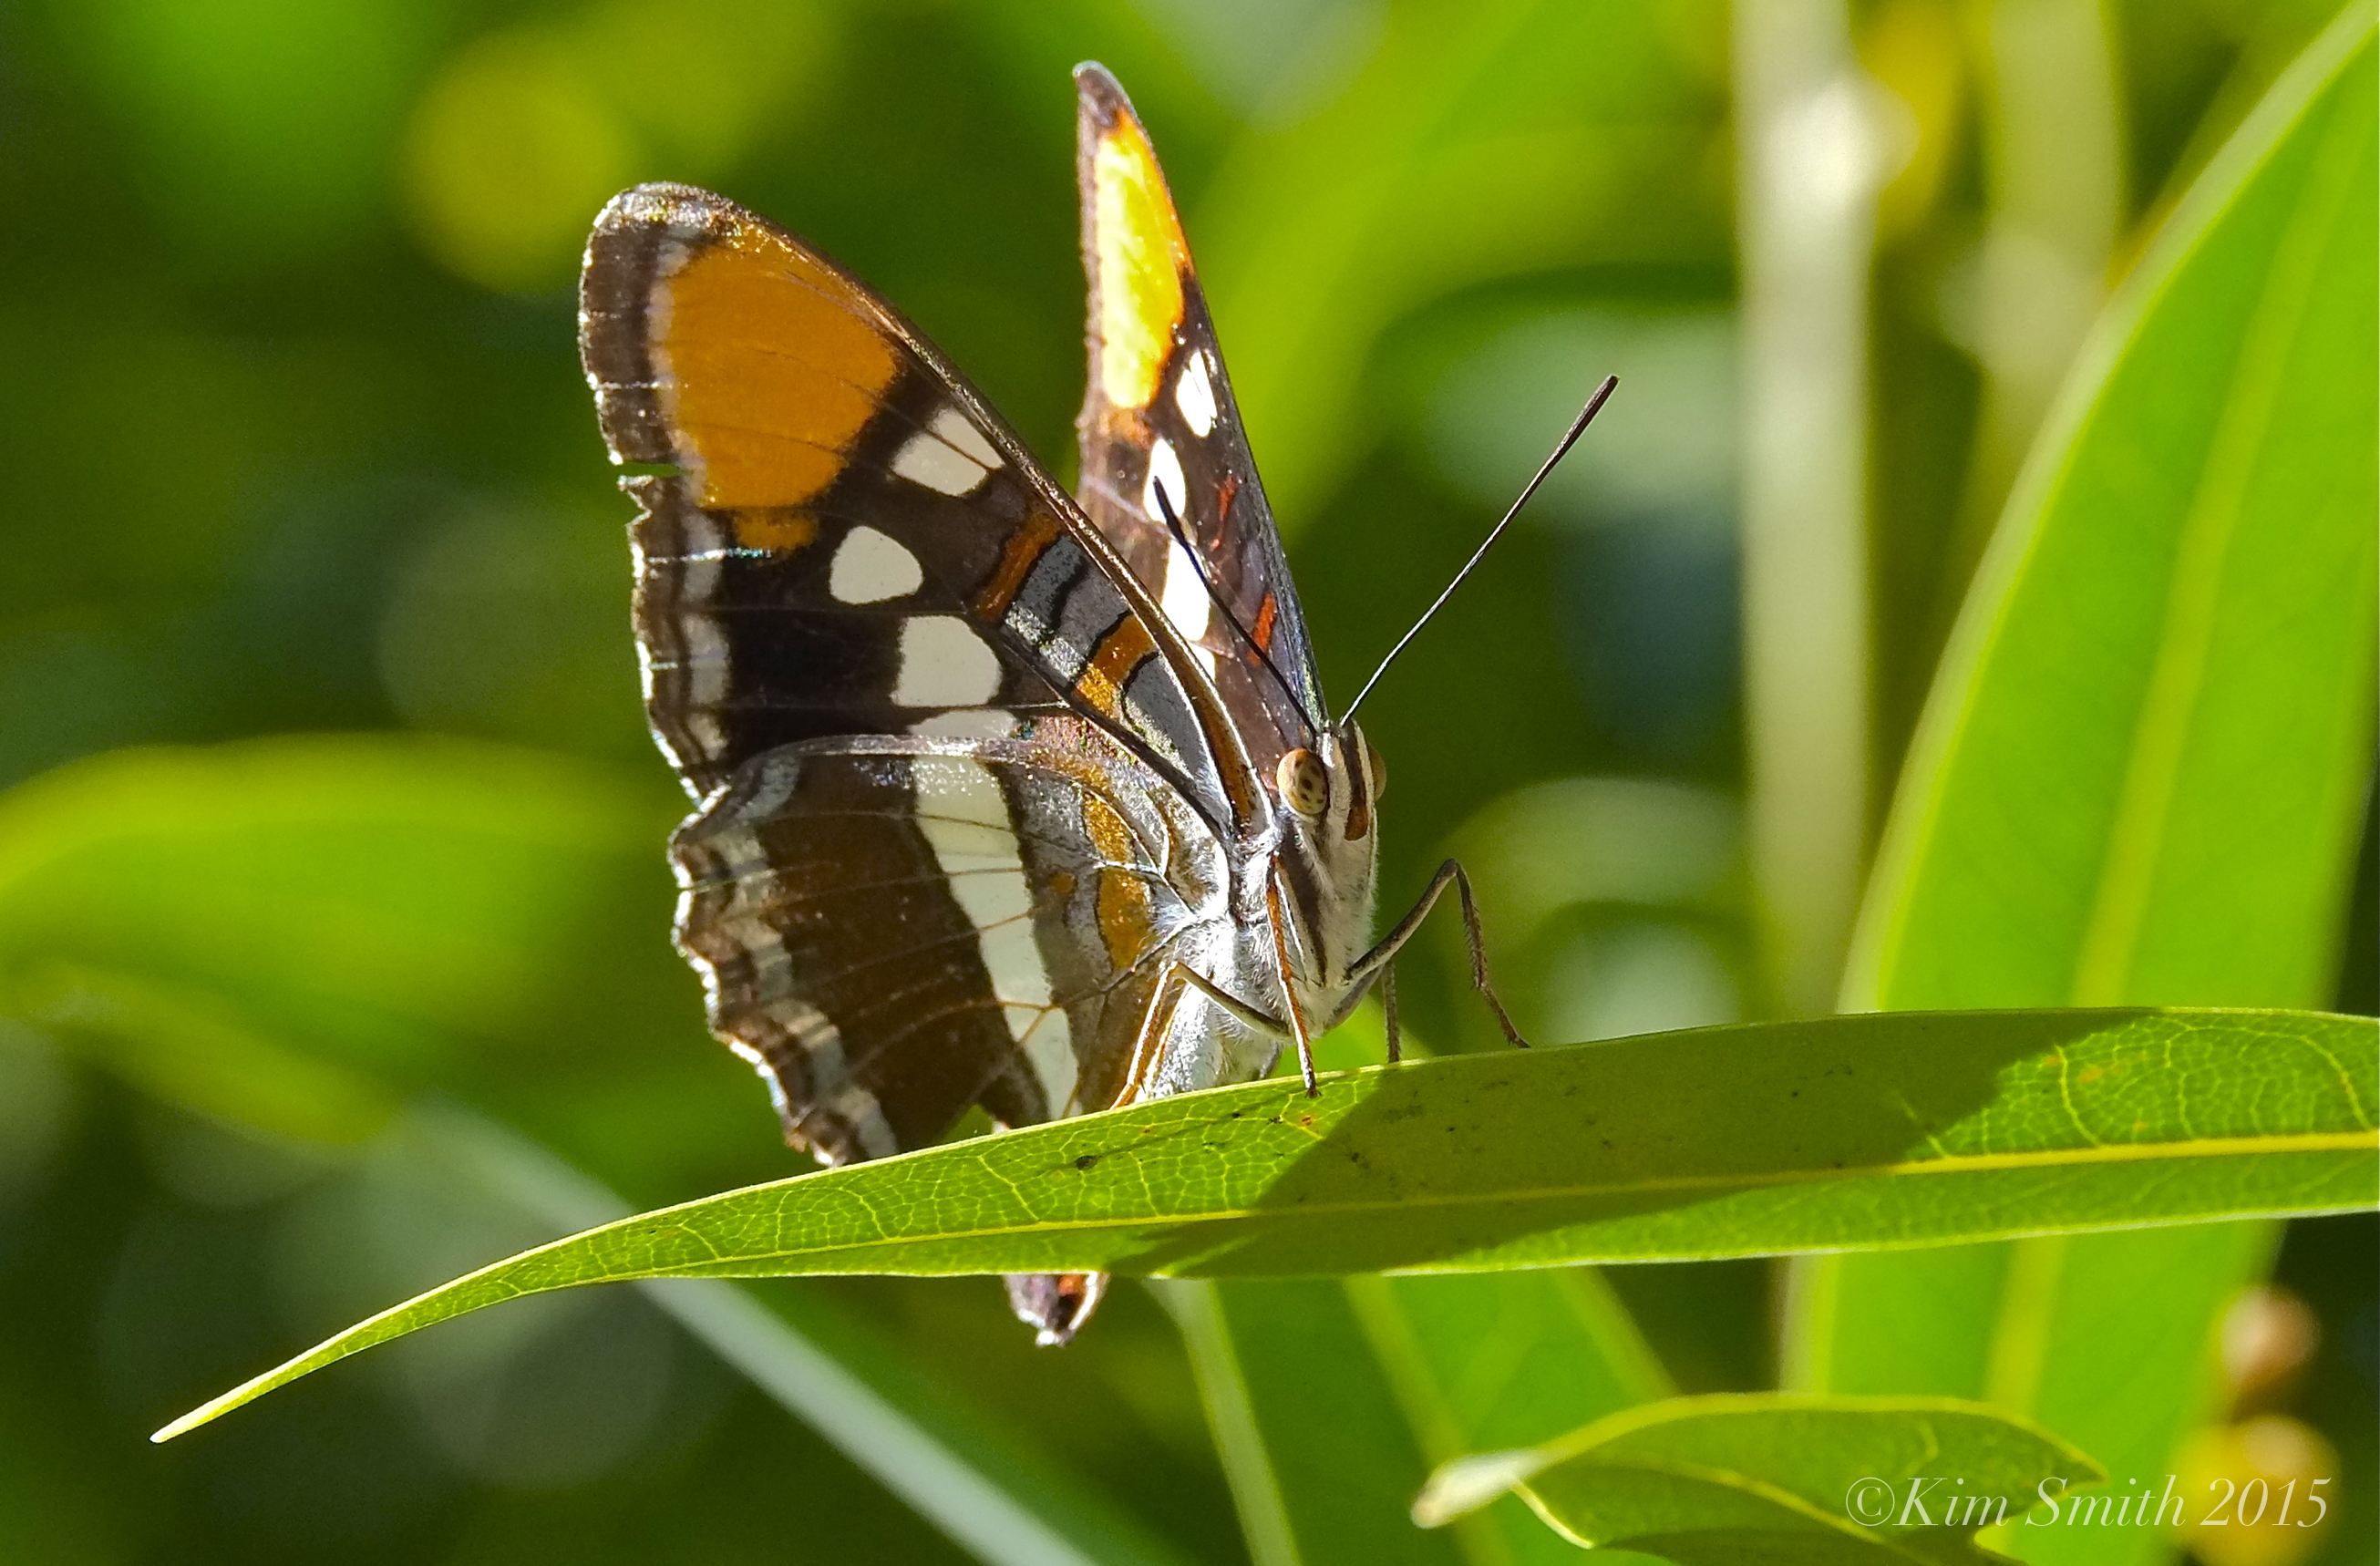 Butterfly - photo#42